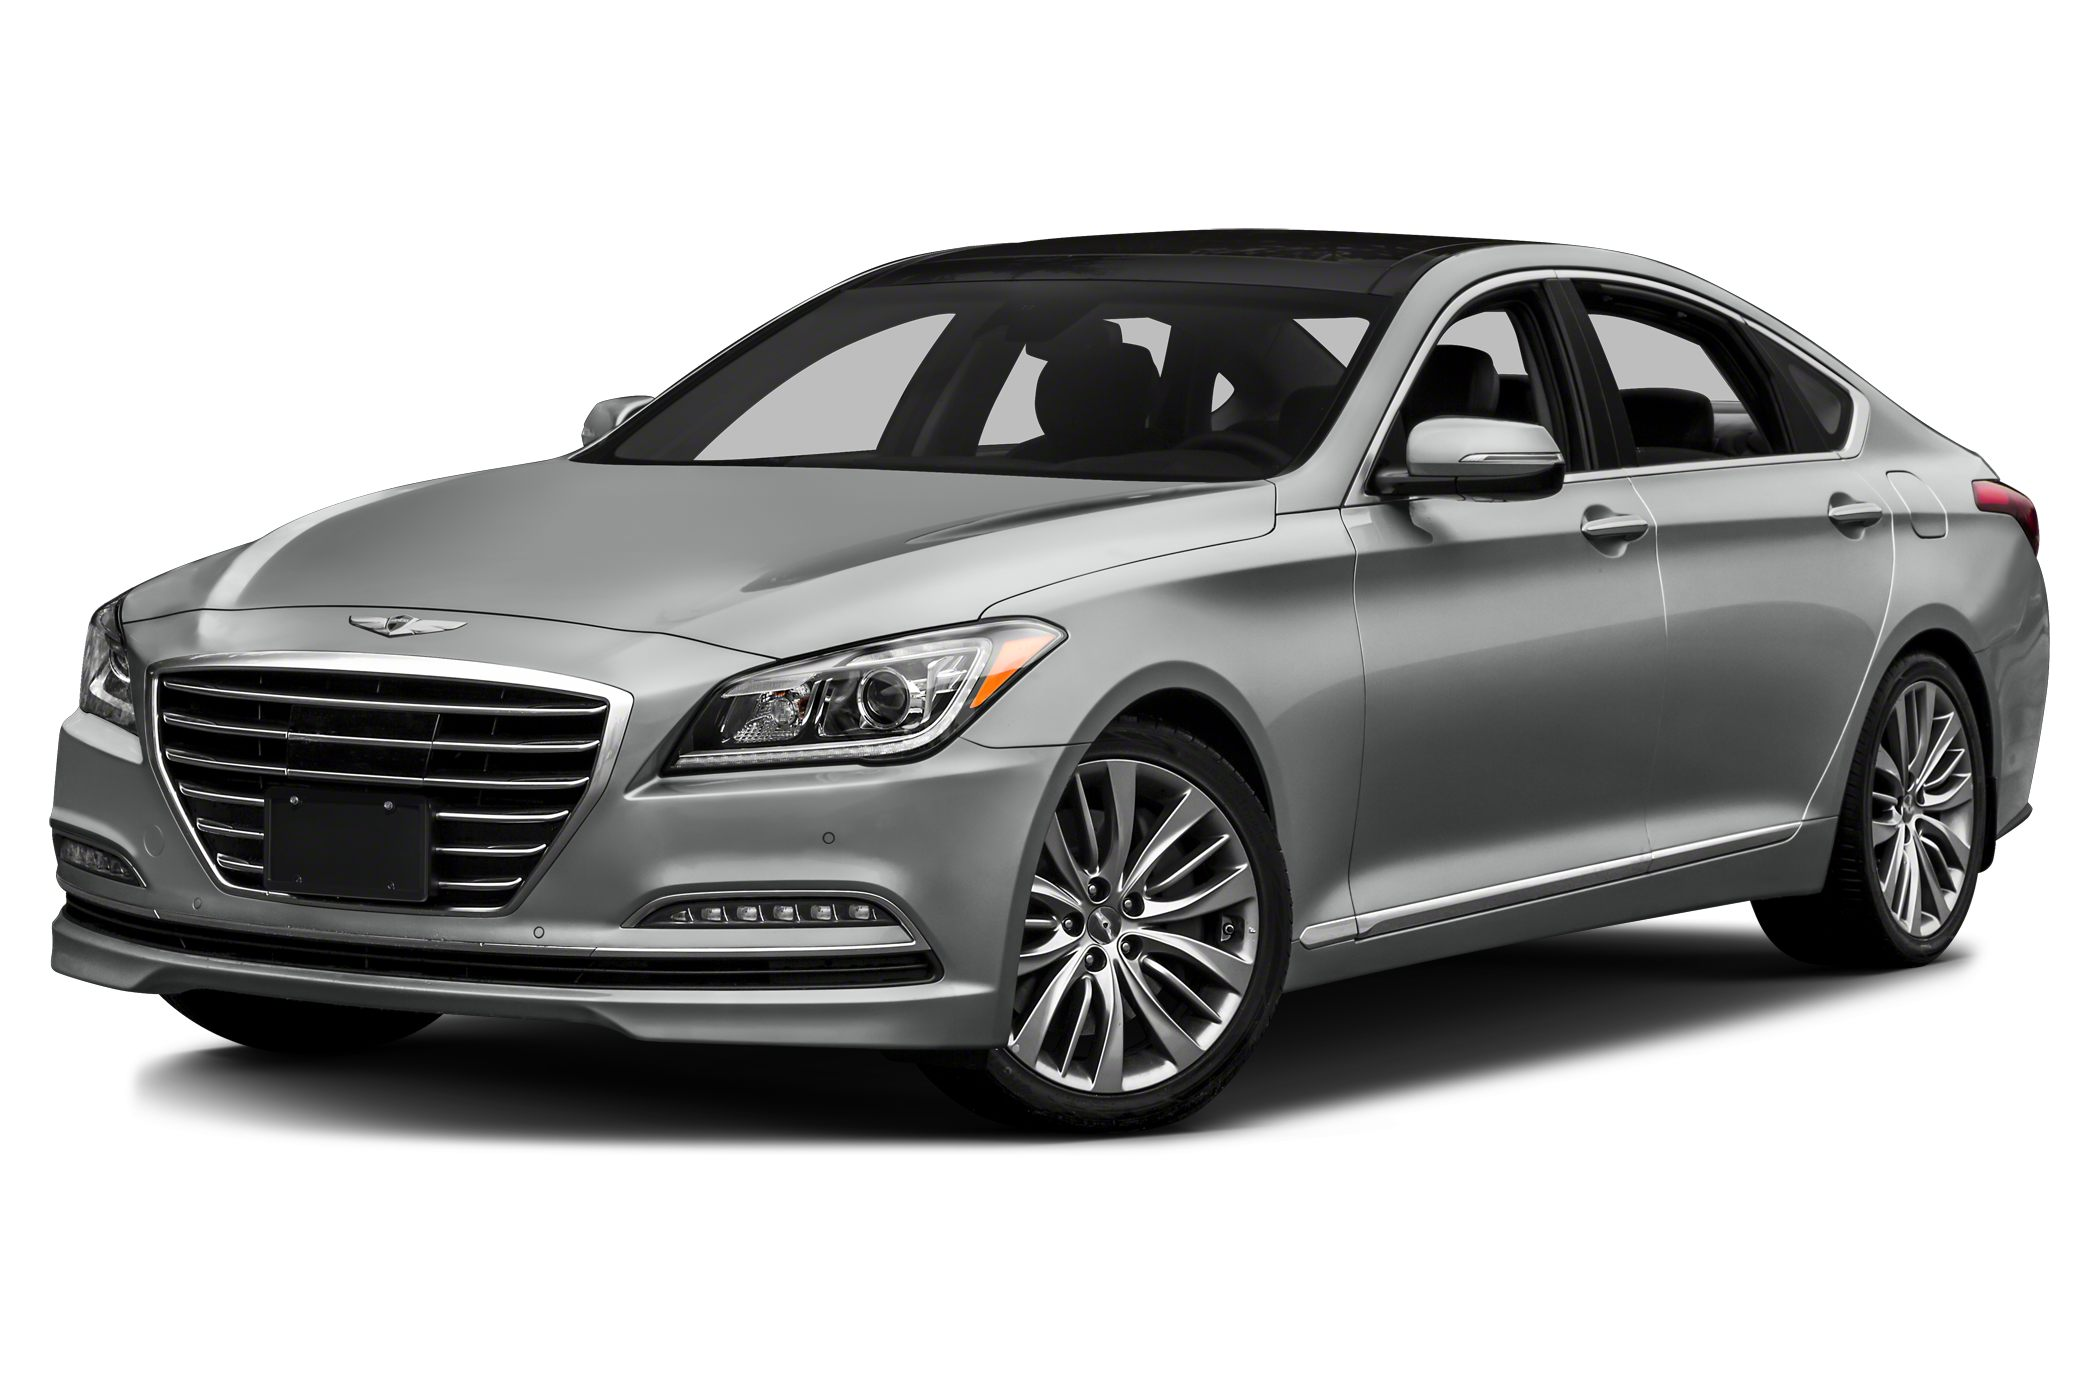 2015 Hyundai Genesis 3.8 Sedan for sale in Hicksville for $49,135 with 0 miles.